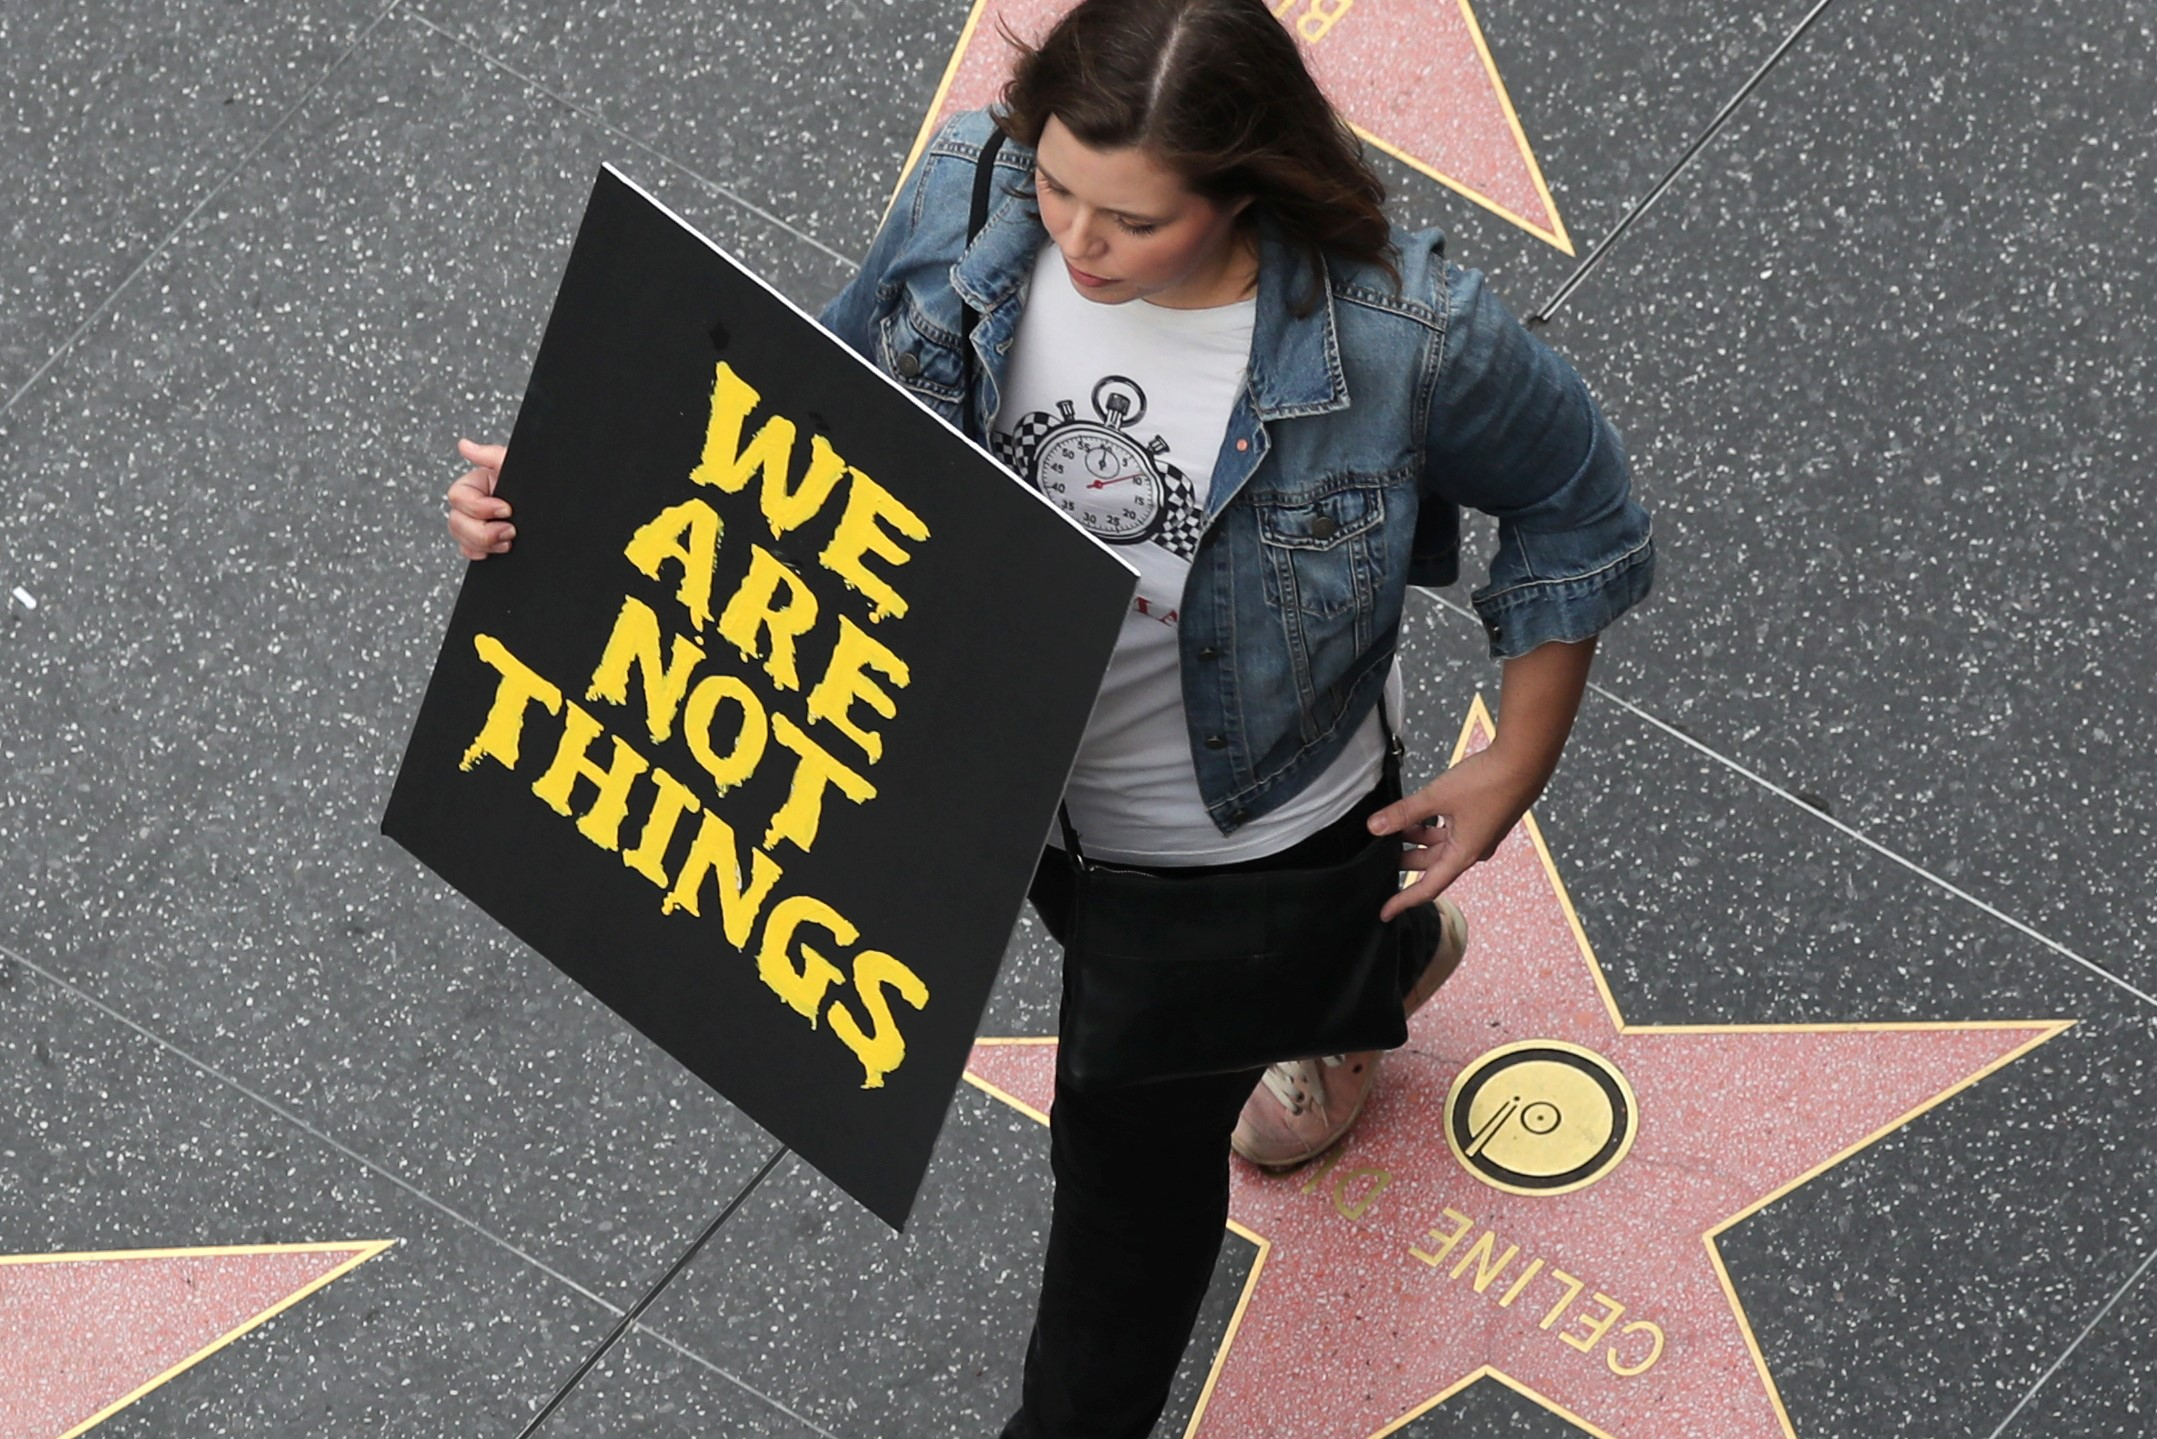 A demonstrator takes part in a #MeToo protest march for survivors of sexual assault and their supporters on the Hollywood Walk of Fame in Hollywood, Los Angeles, California US November 12, 2017. Credit: Reuters/Lucy Nicholson